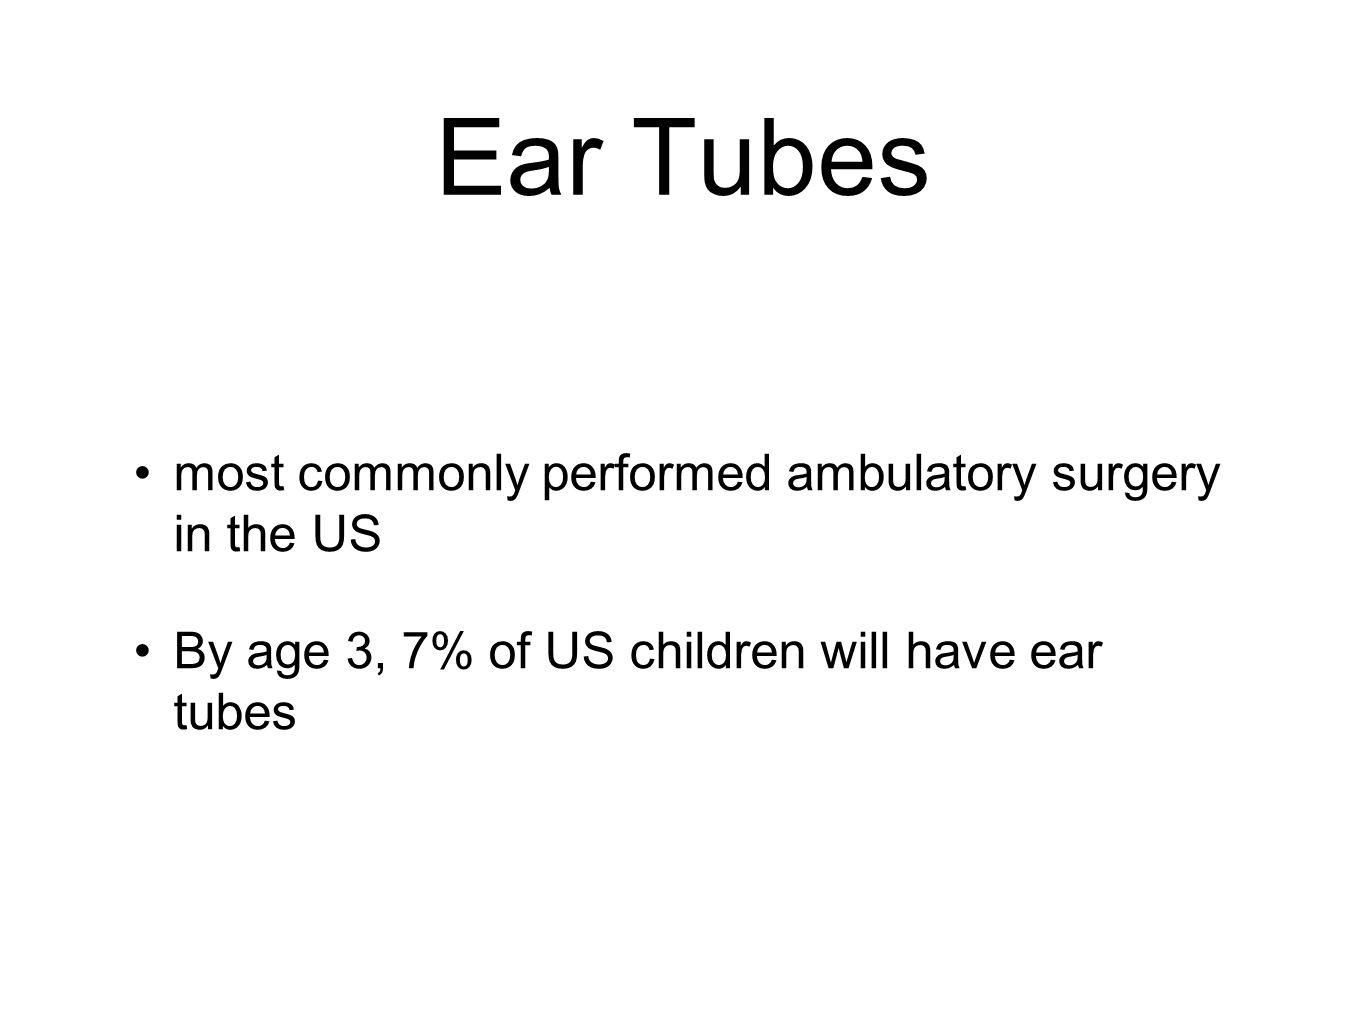 Ear Tubes most commonly performed ambulatory surgery in the US